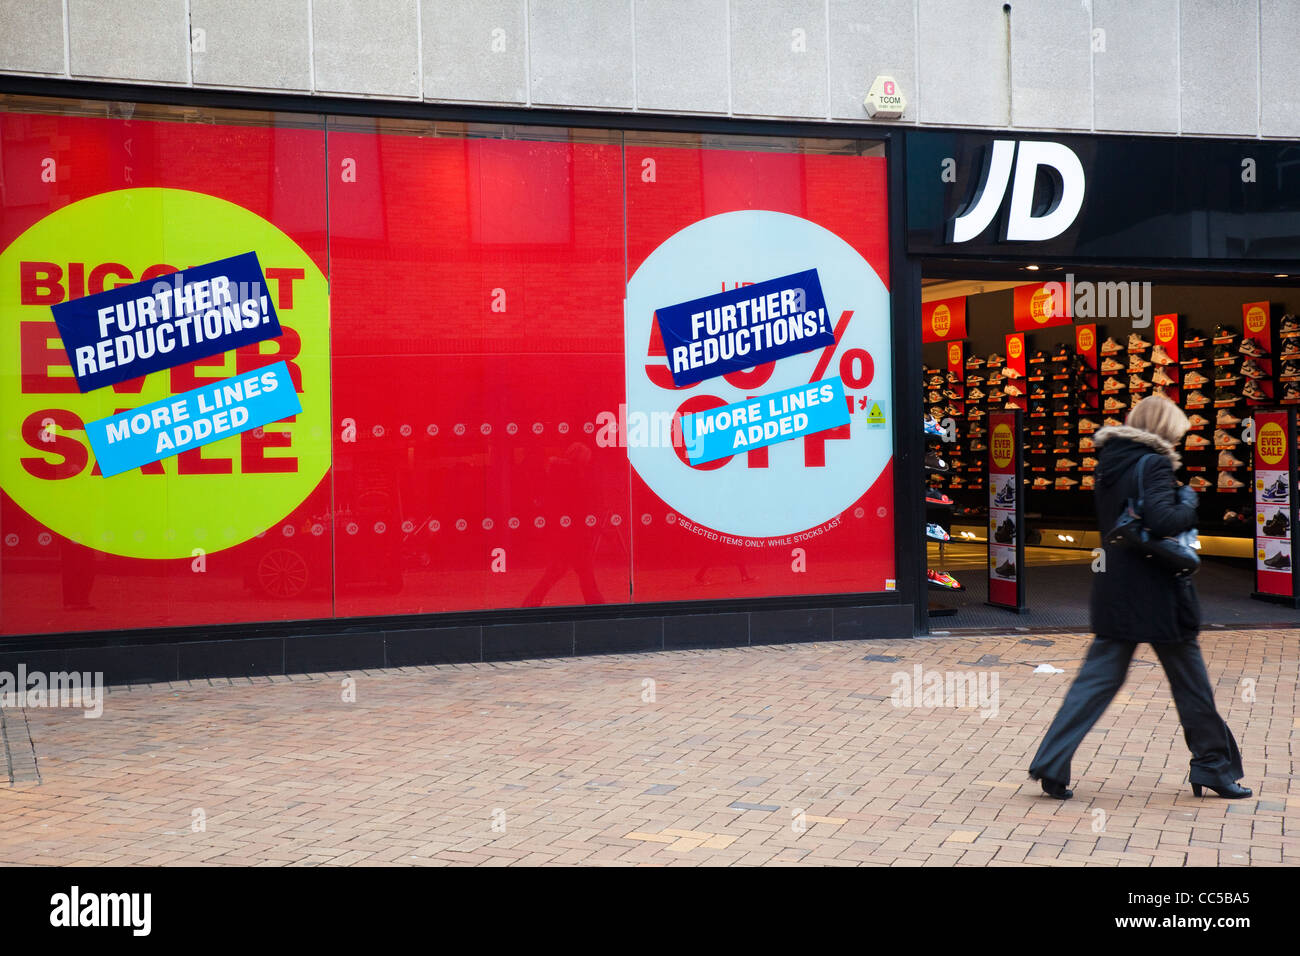 Jd Sports Stock Photos   Jd Sports Stock Images - Alamy 6f8bb4116